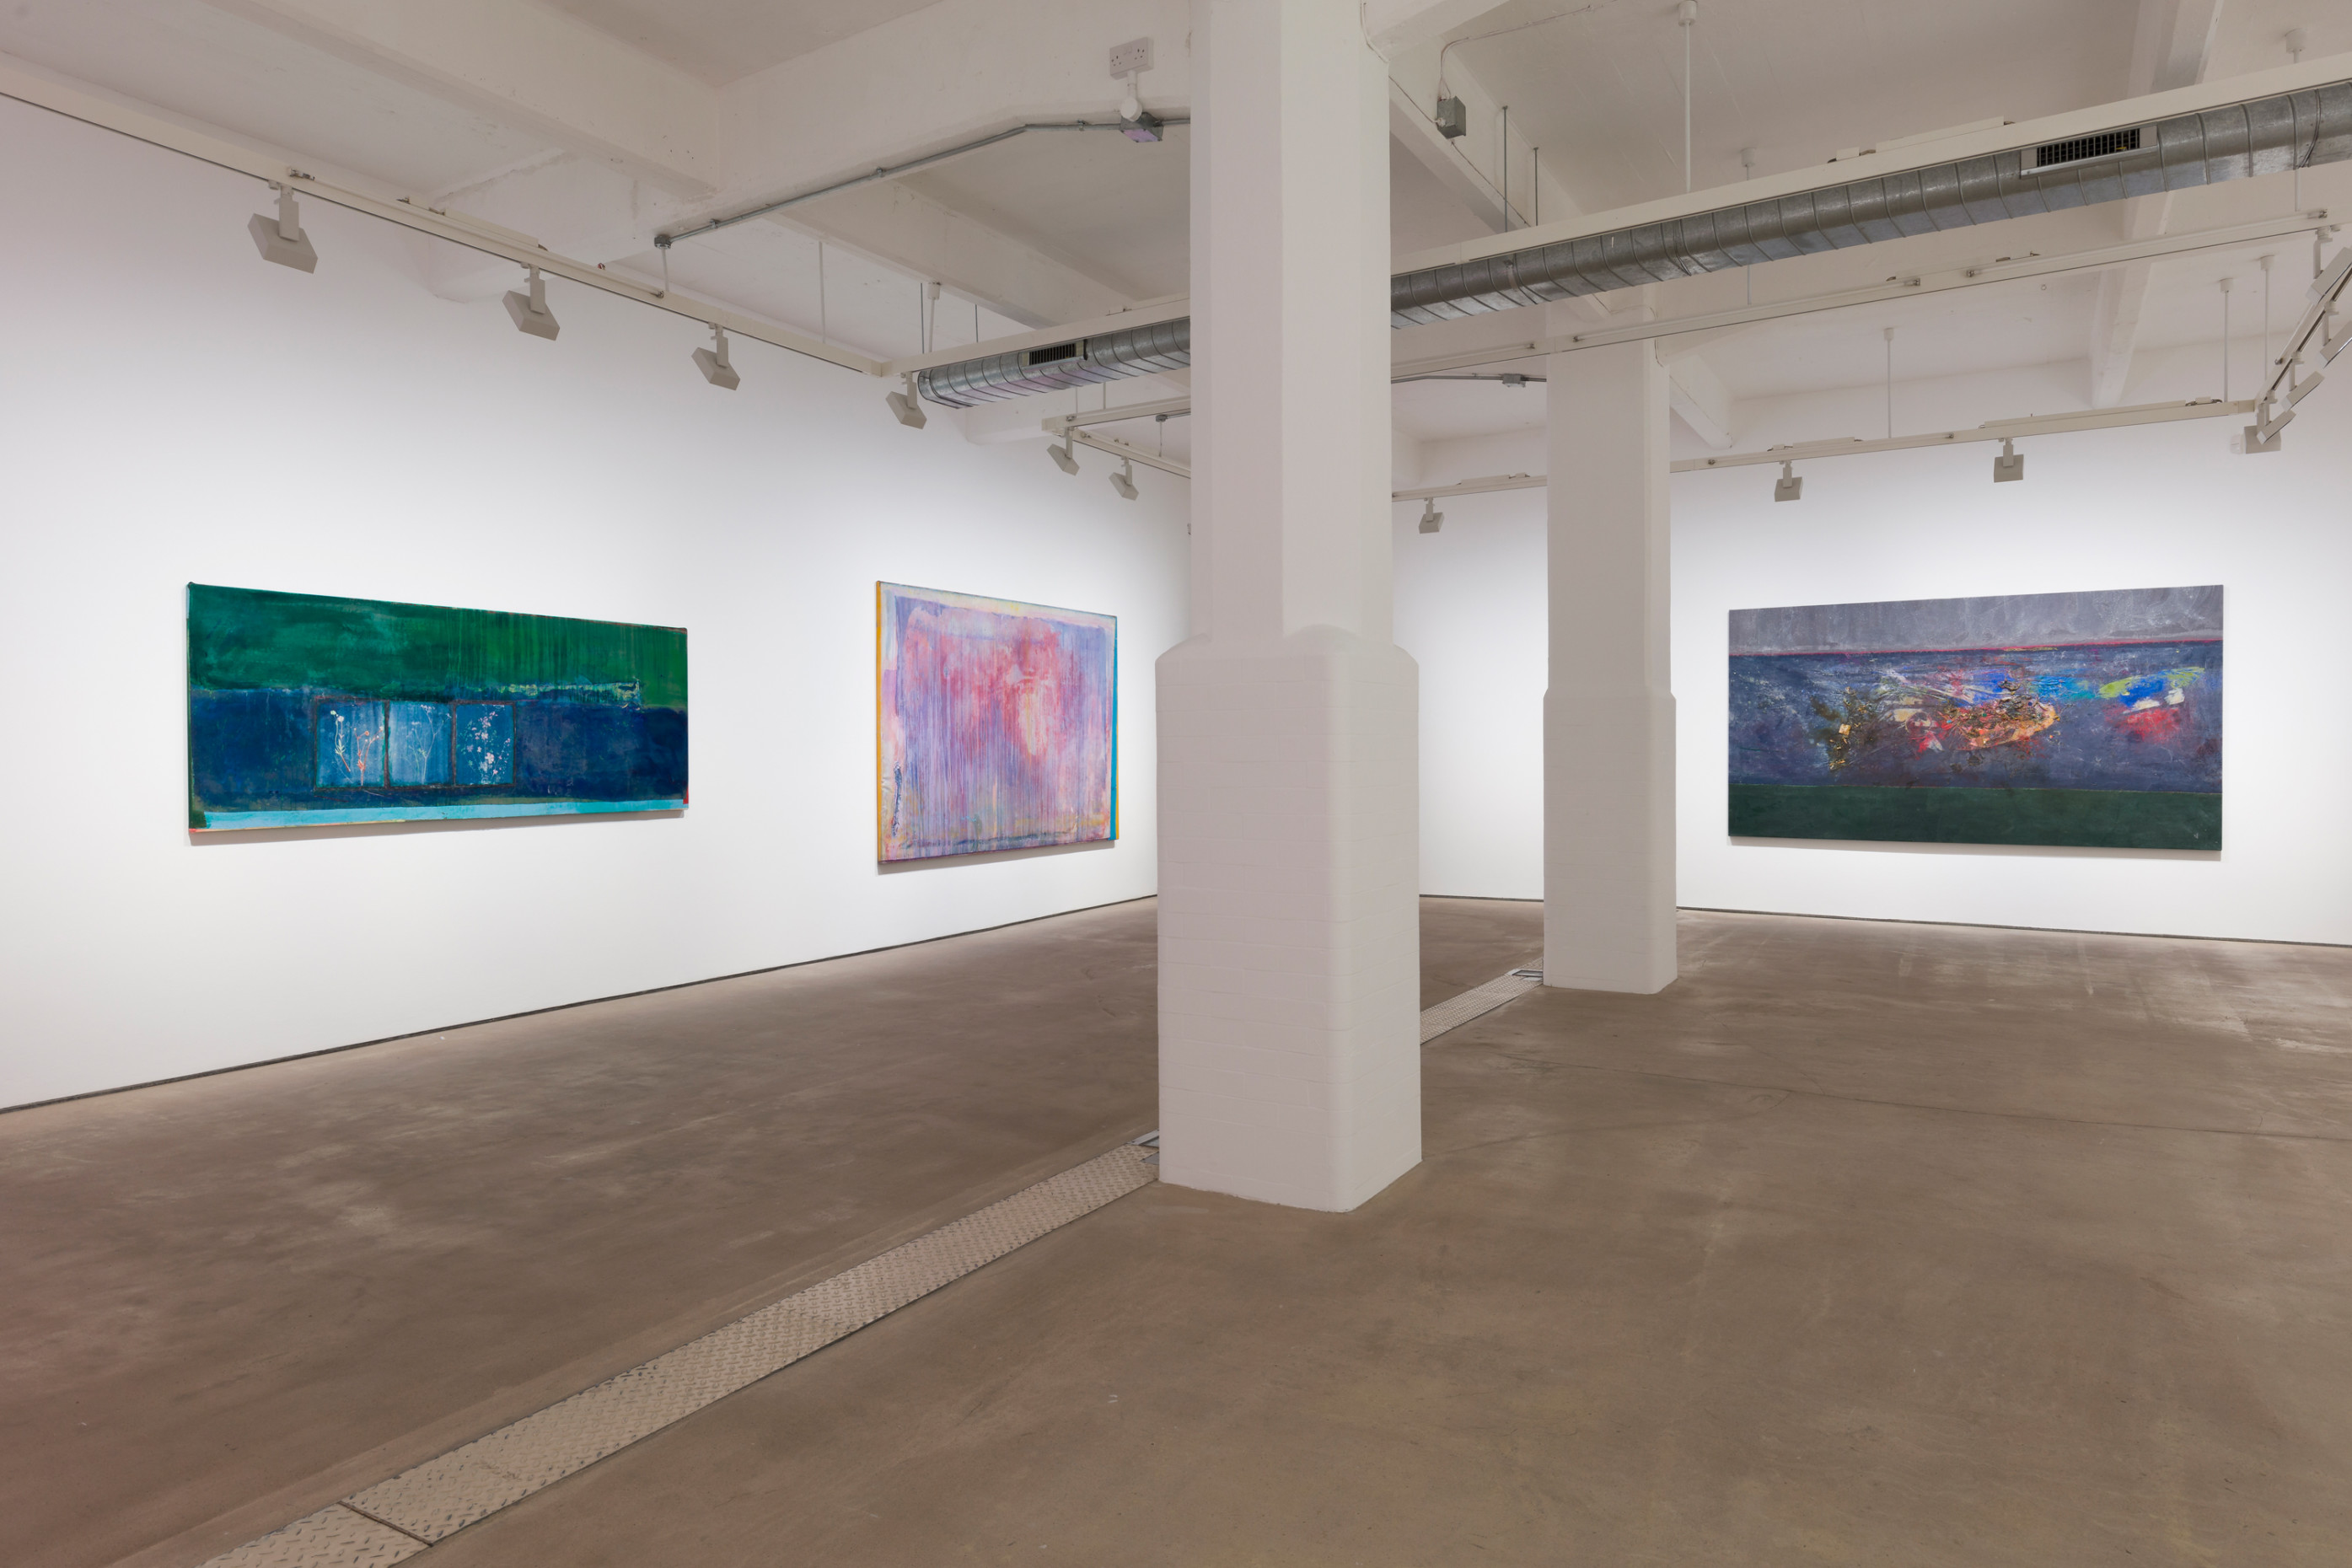 Installation view 'More Land than Landscape', Hales London, 10 May - 22 June 2019